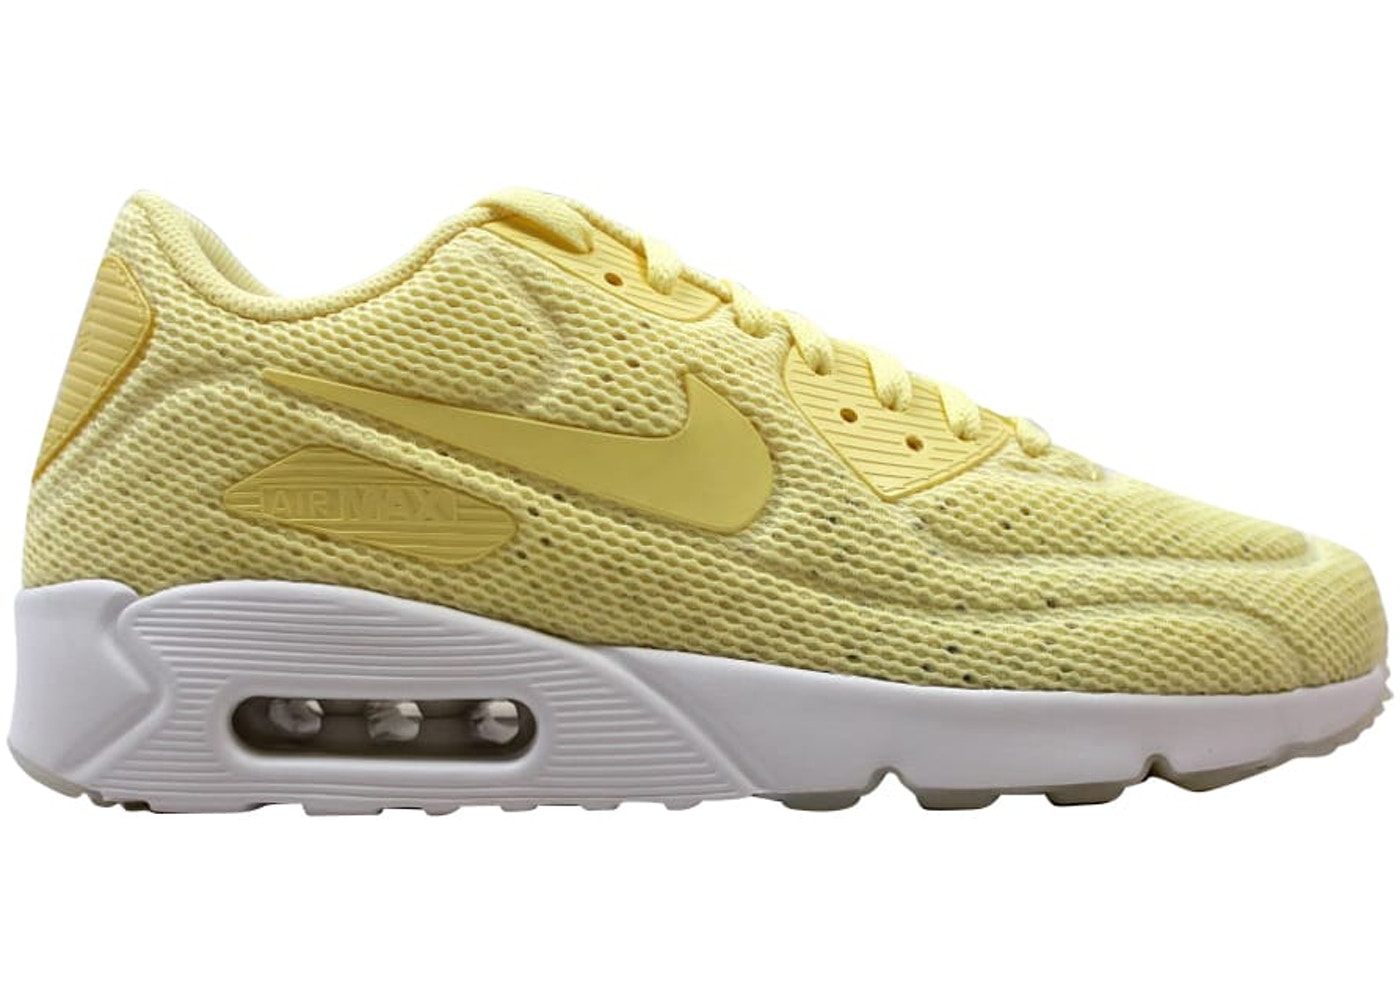 b10699e44c Sell. or Ask. Size: 9.5. View All Bids. Nike Air Max 90 Ultra 2.0 Br Lemon  ...